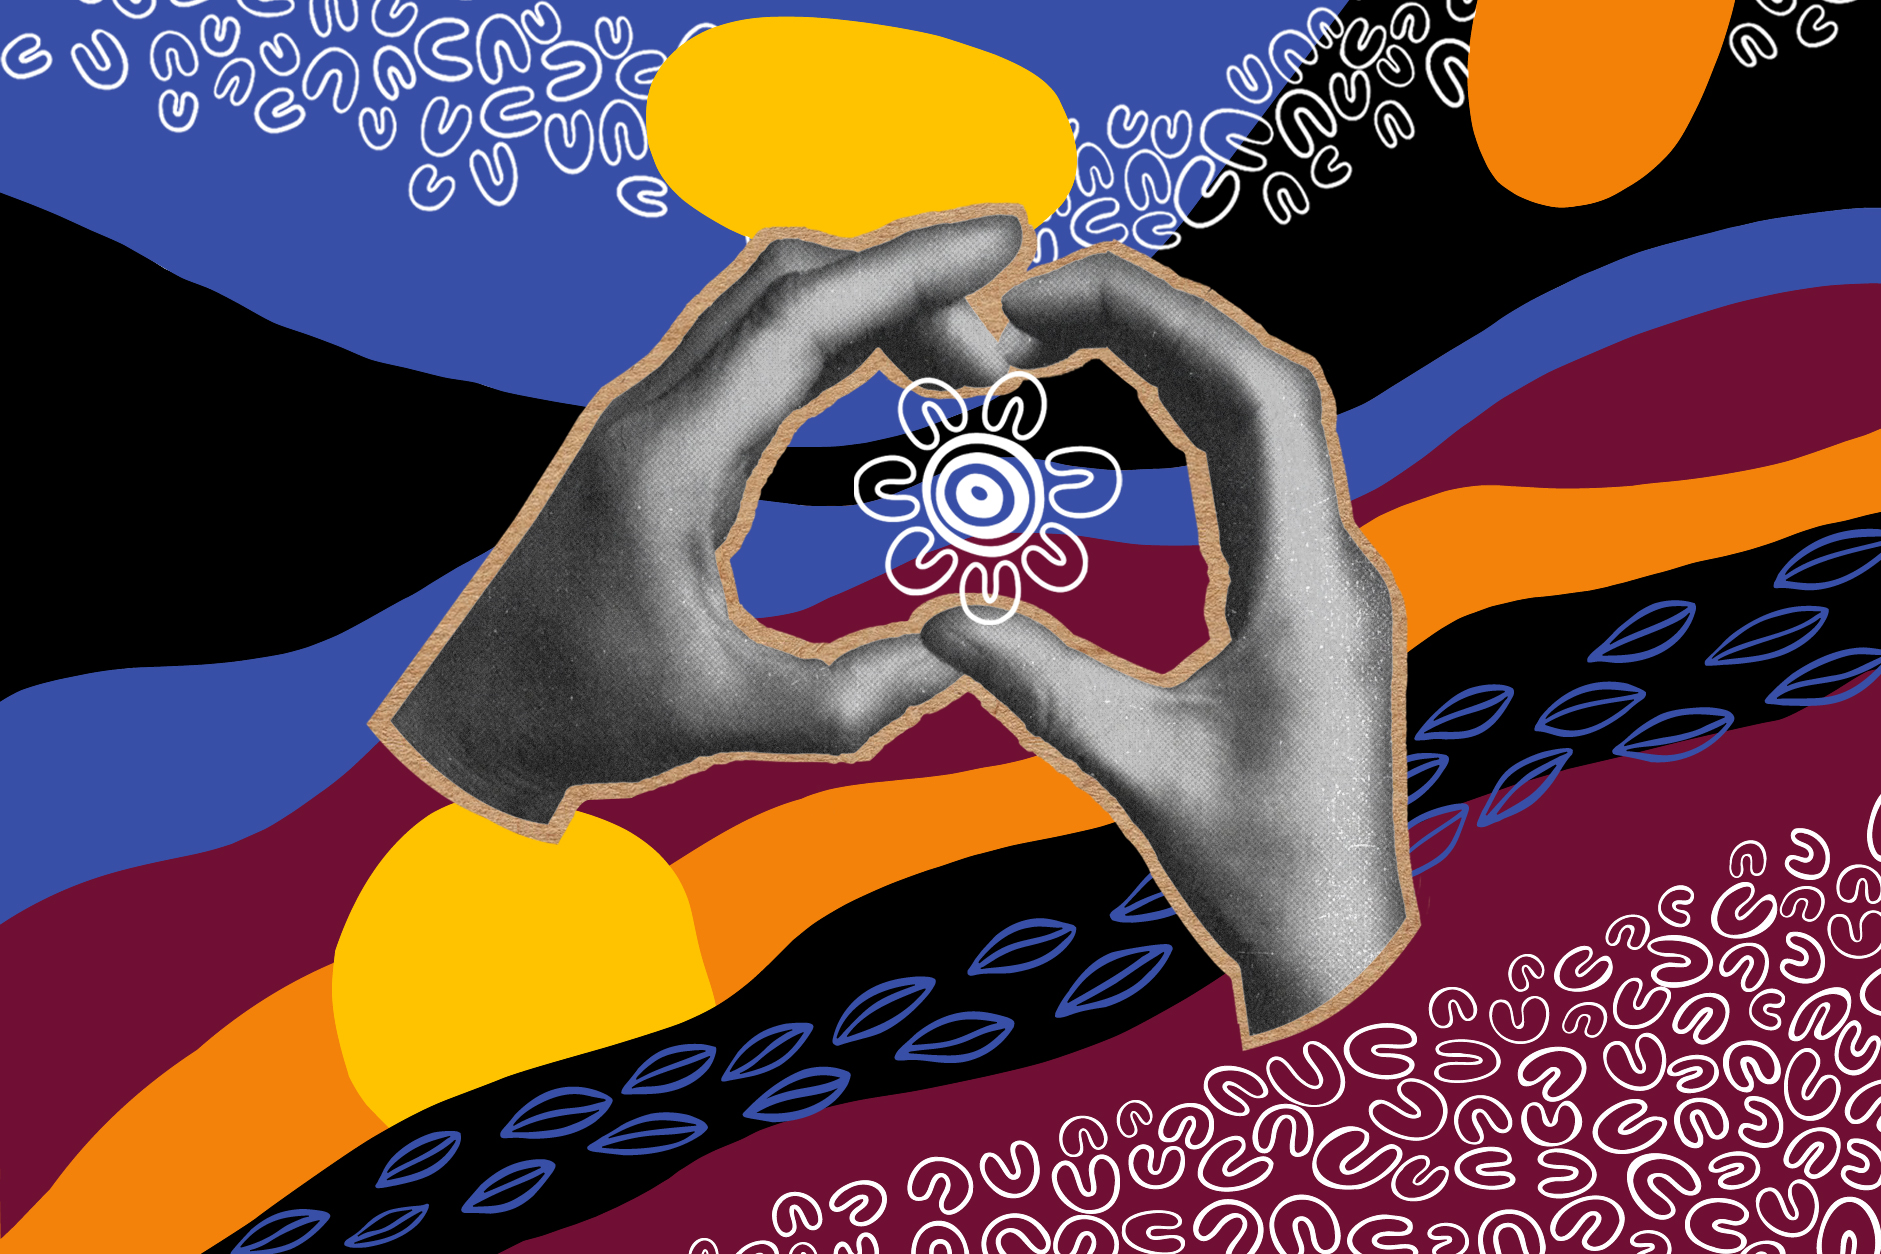 A cutout black and white photo of hands forming shape of Australia sit on top of colourful NAIDOC Week graphics.